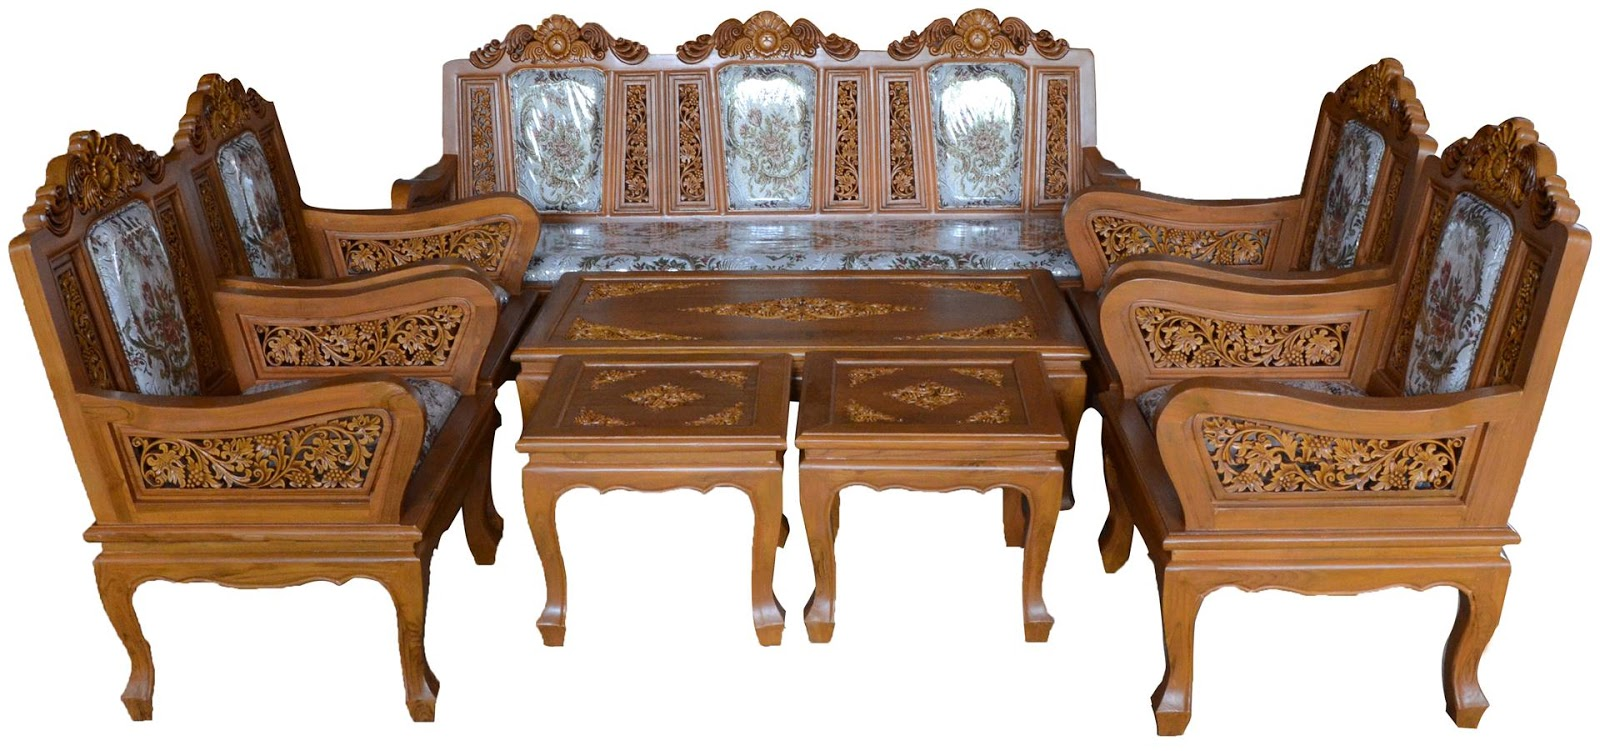 Thailand carved furniture picture record for Thai furniture